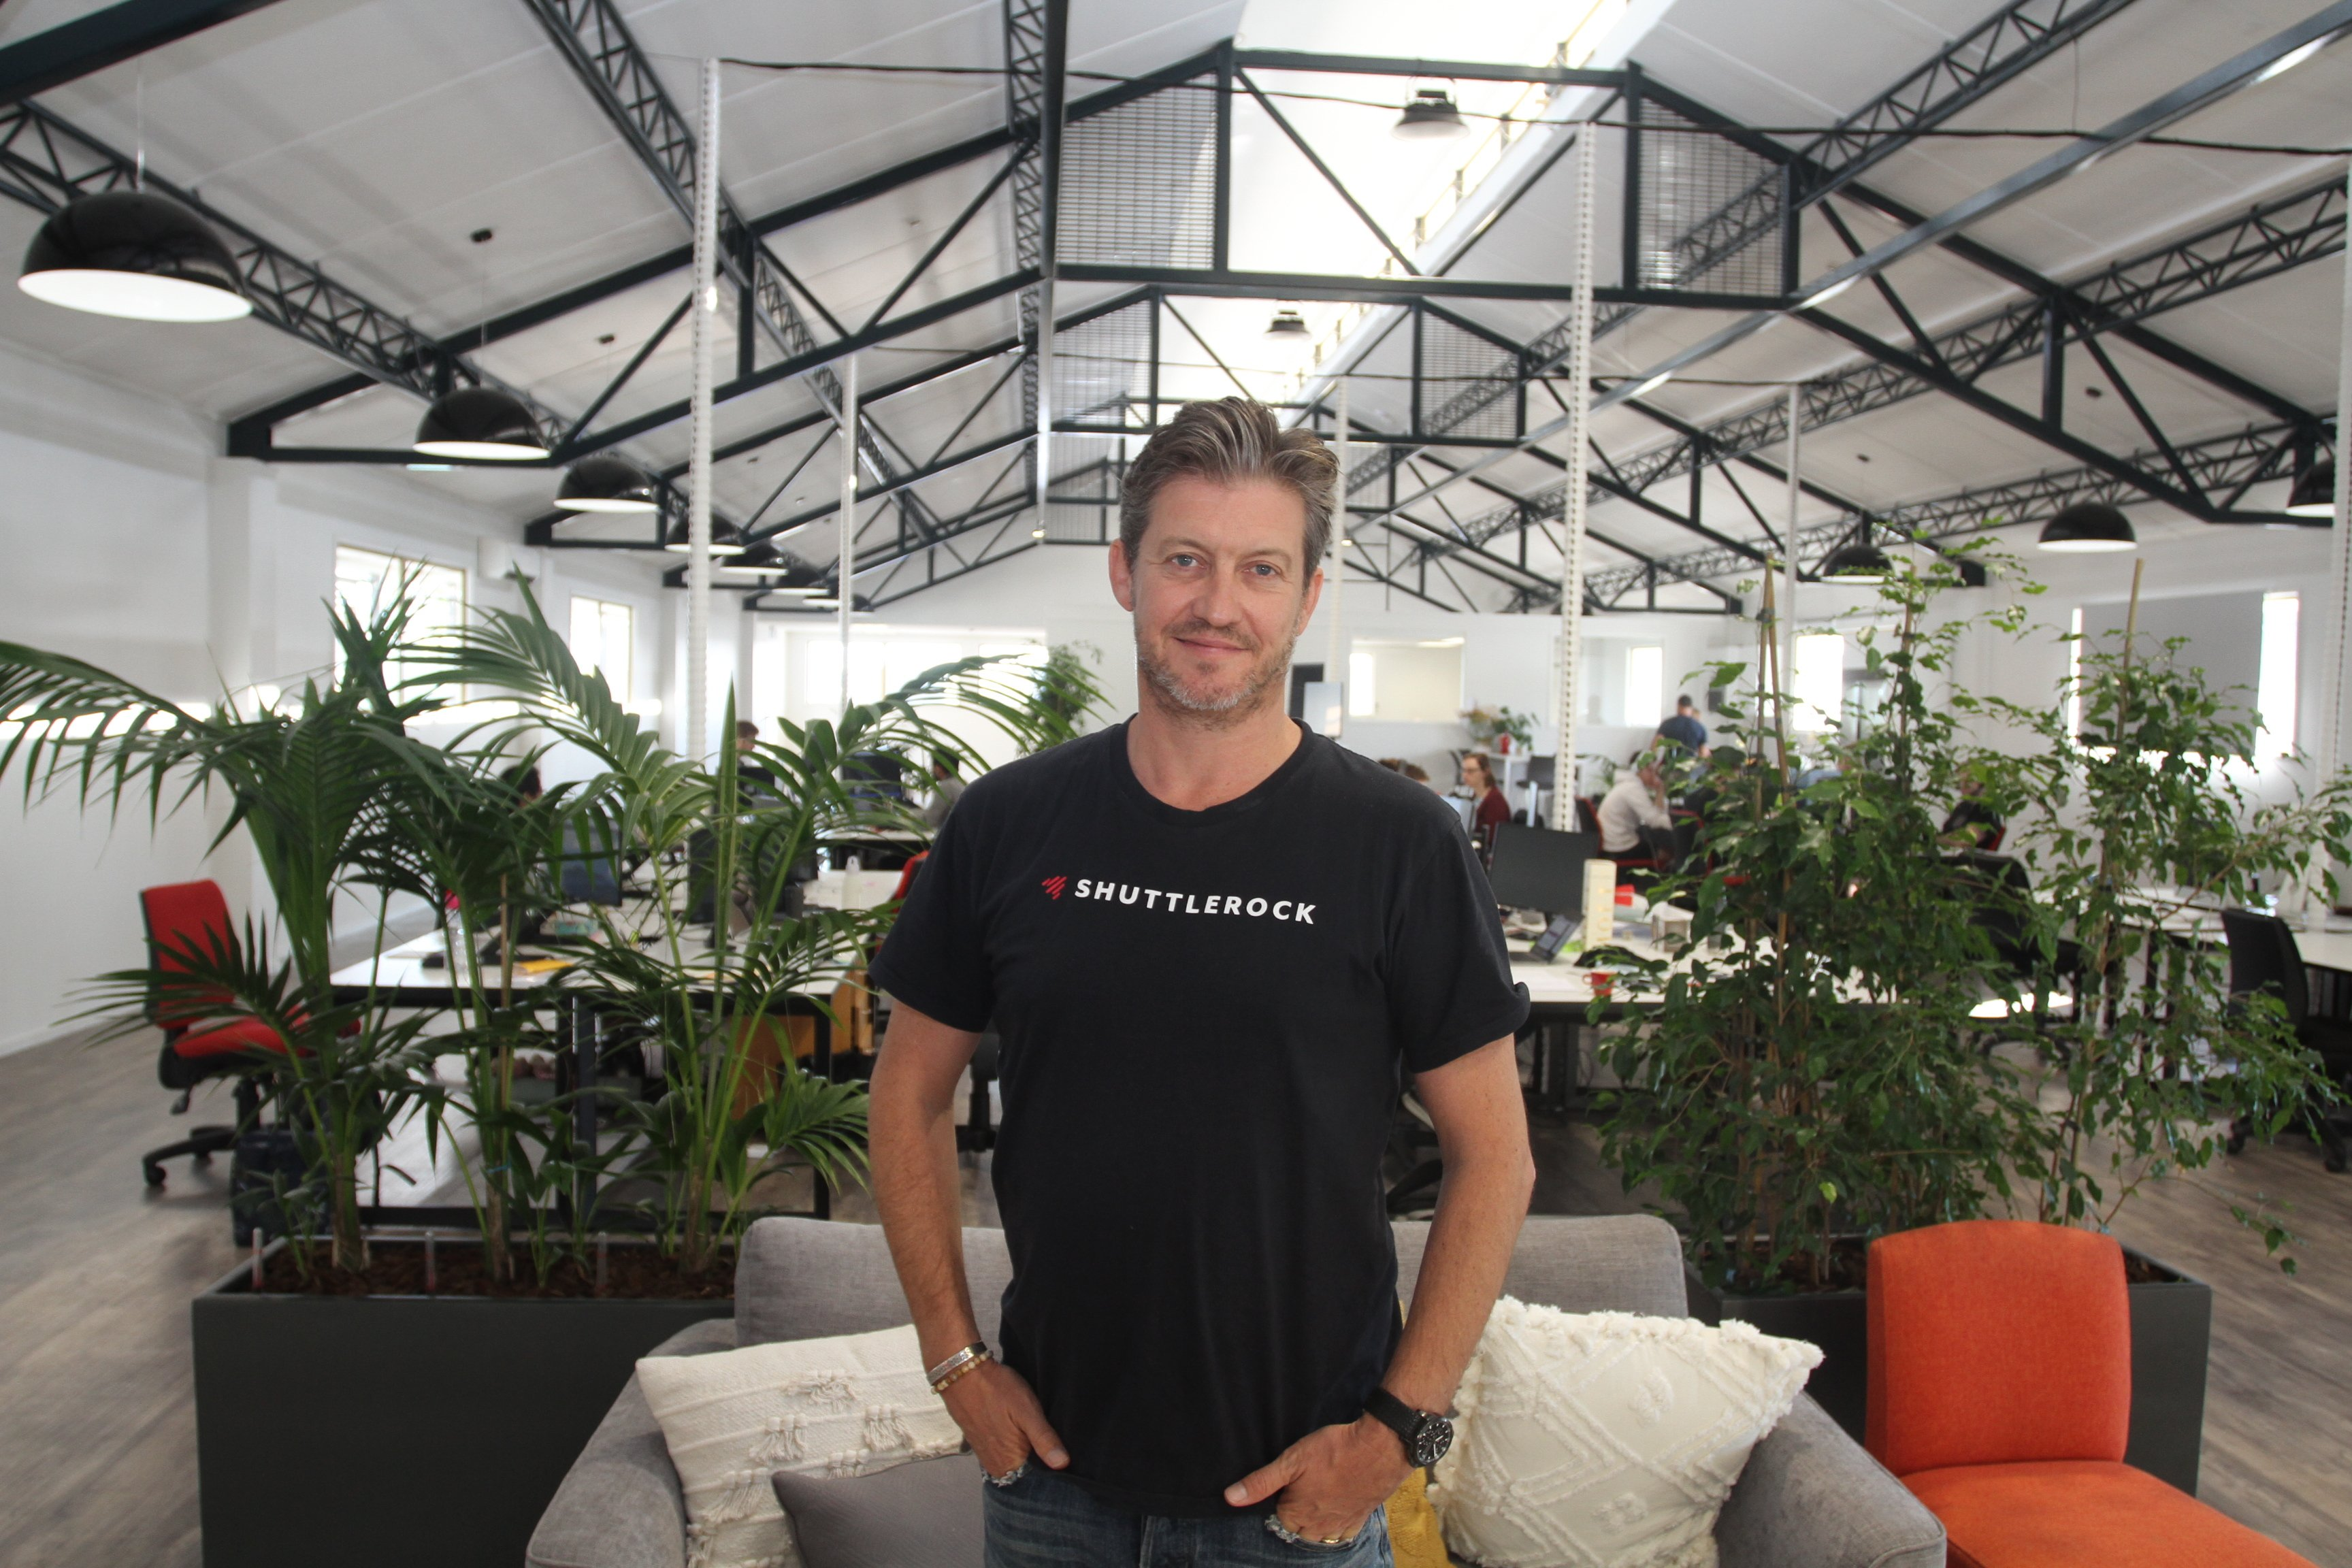 Shuttlerock Raises $20M to Accelerate Adoption of its Creative as a Service Solution